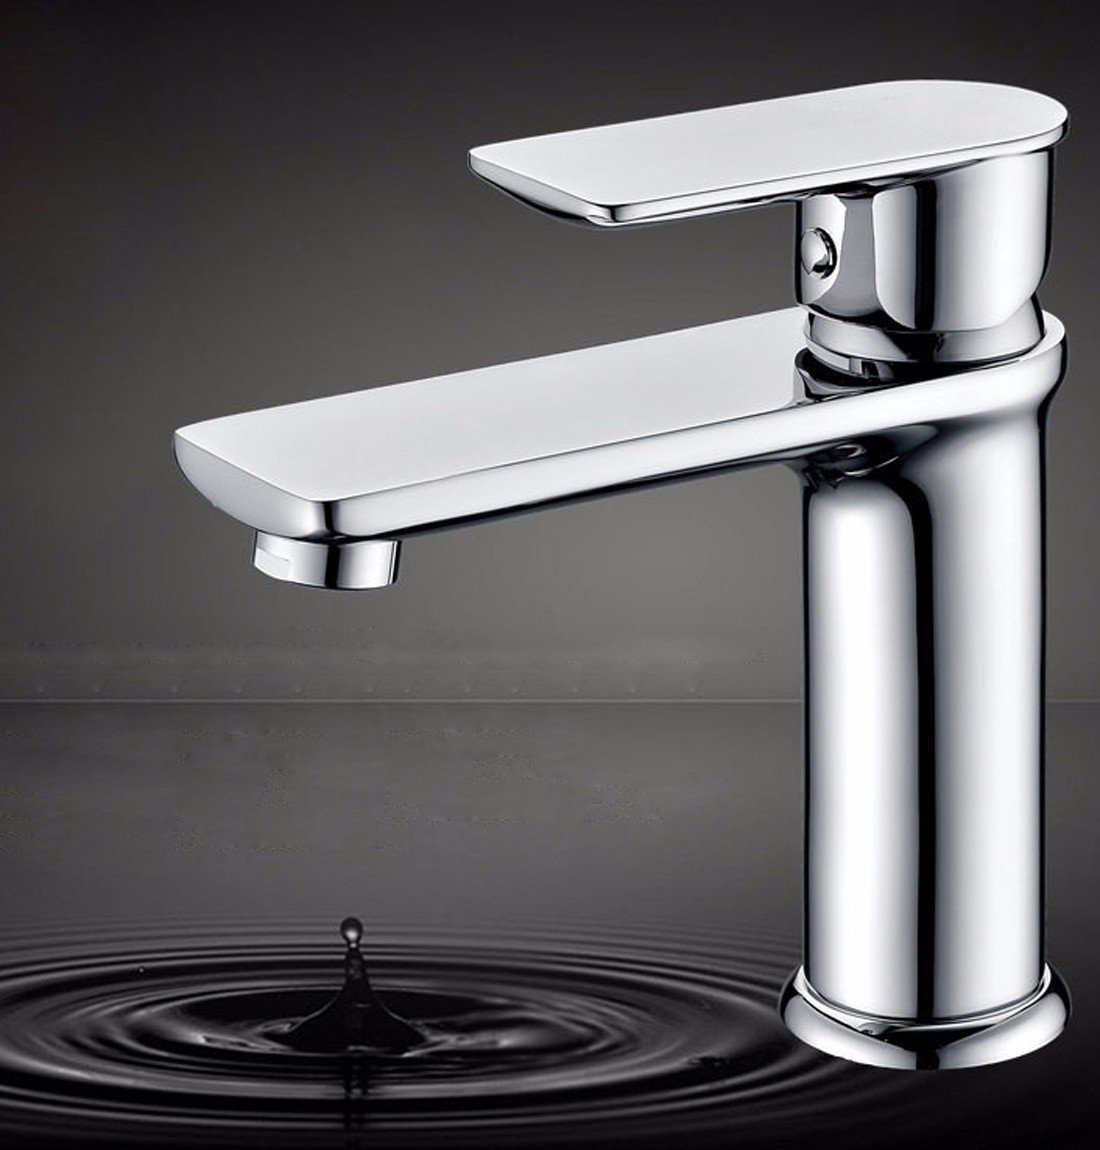 MDRW-All copper single hole basin faucet by MDRW